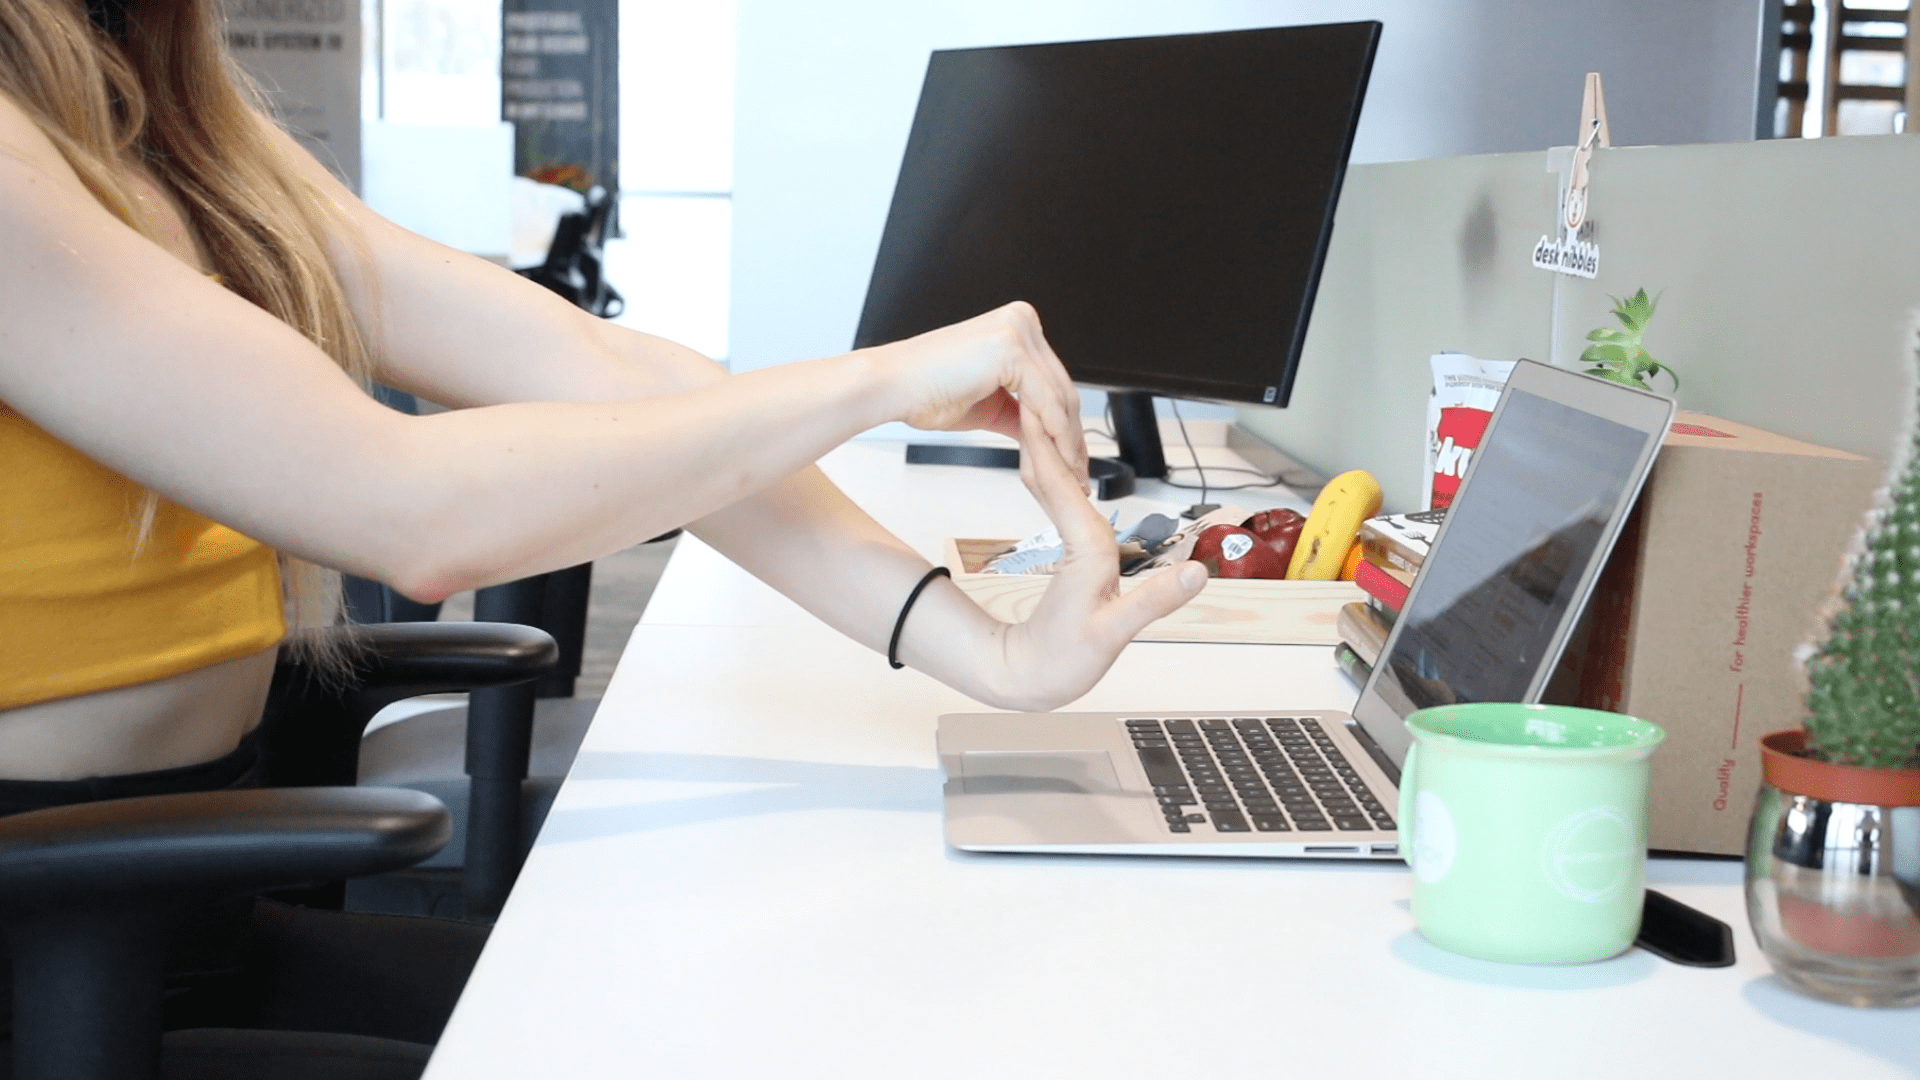 Pull back the wrist, but not too far to soothe office aches from typing